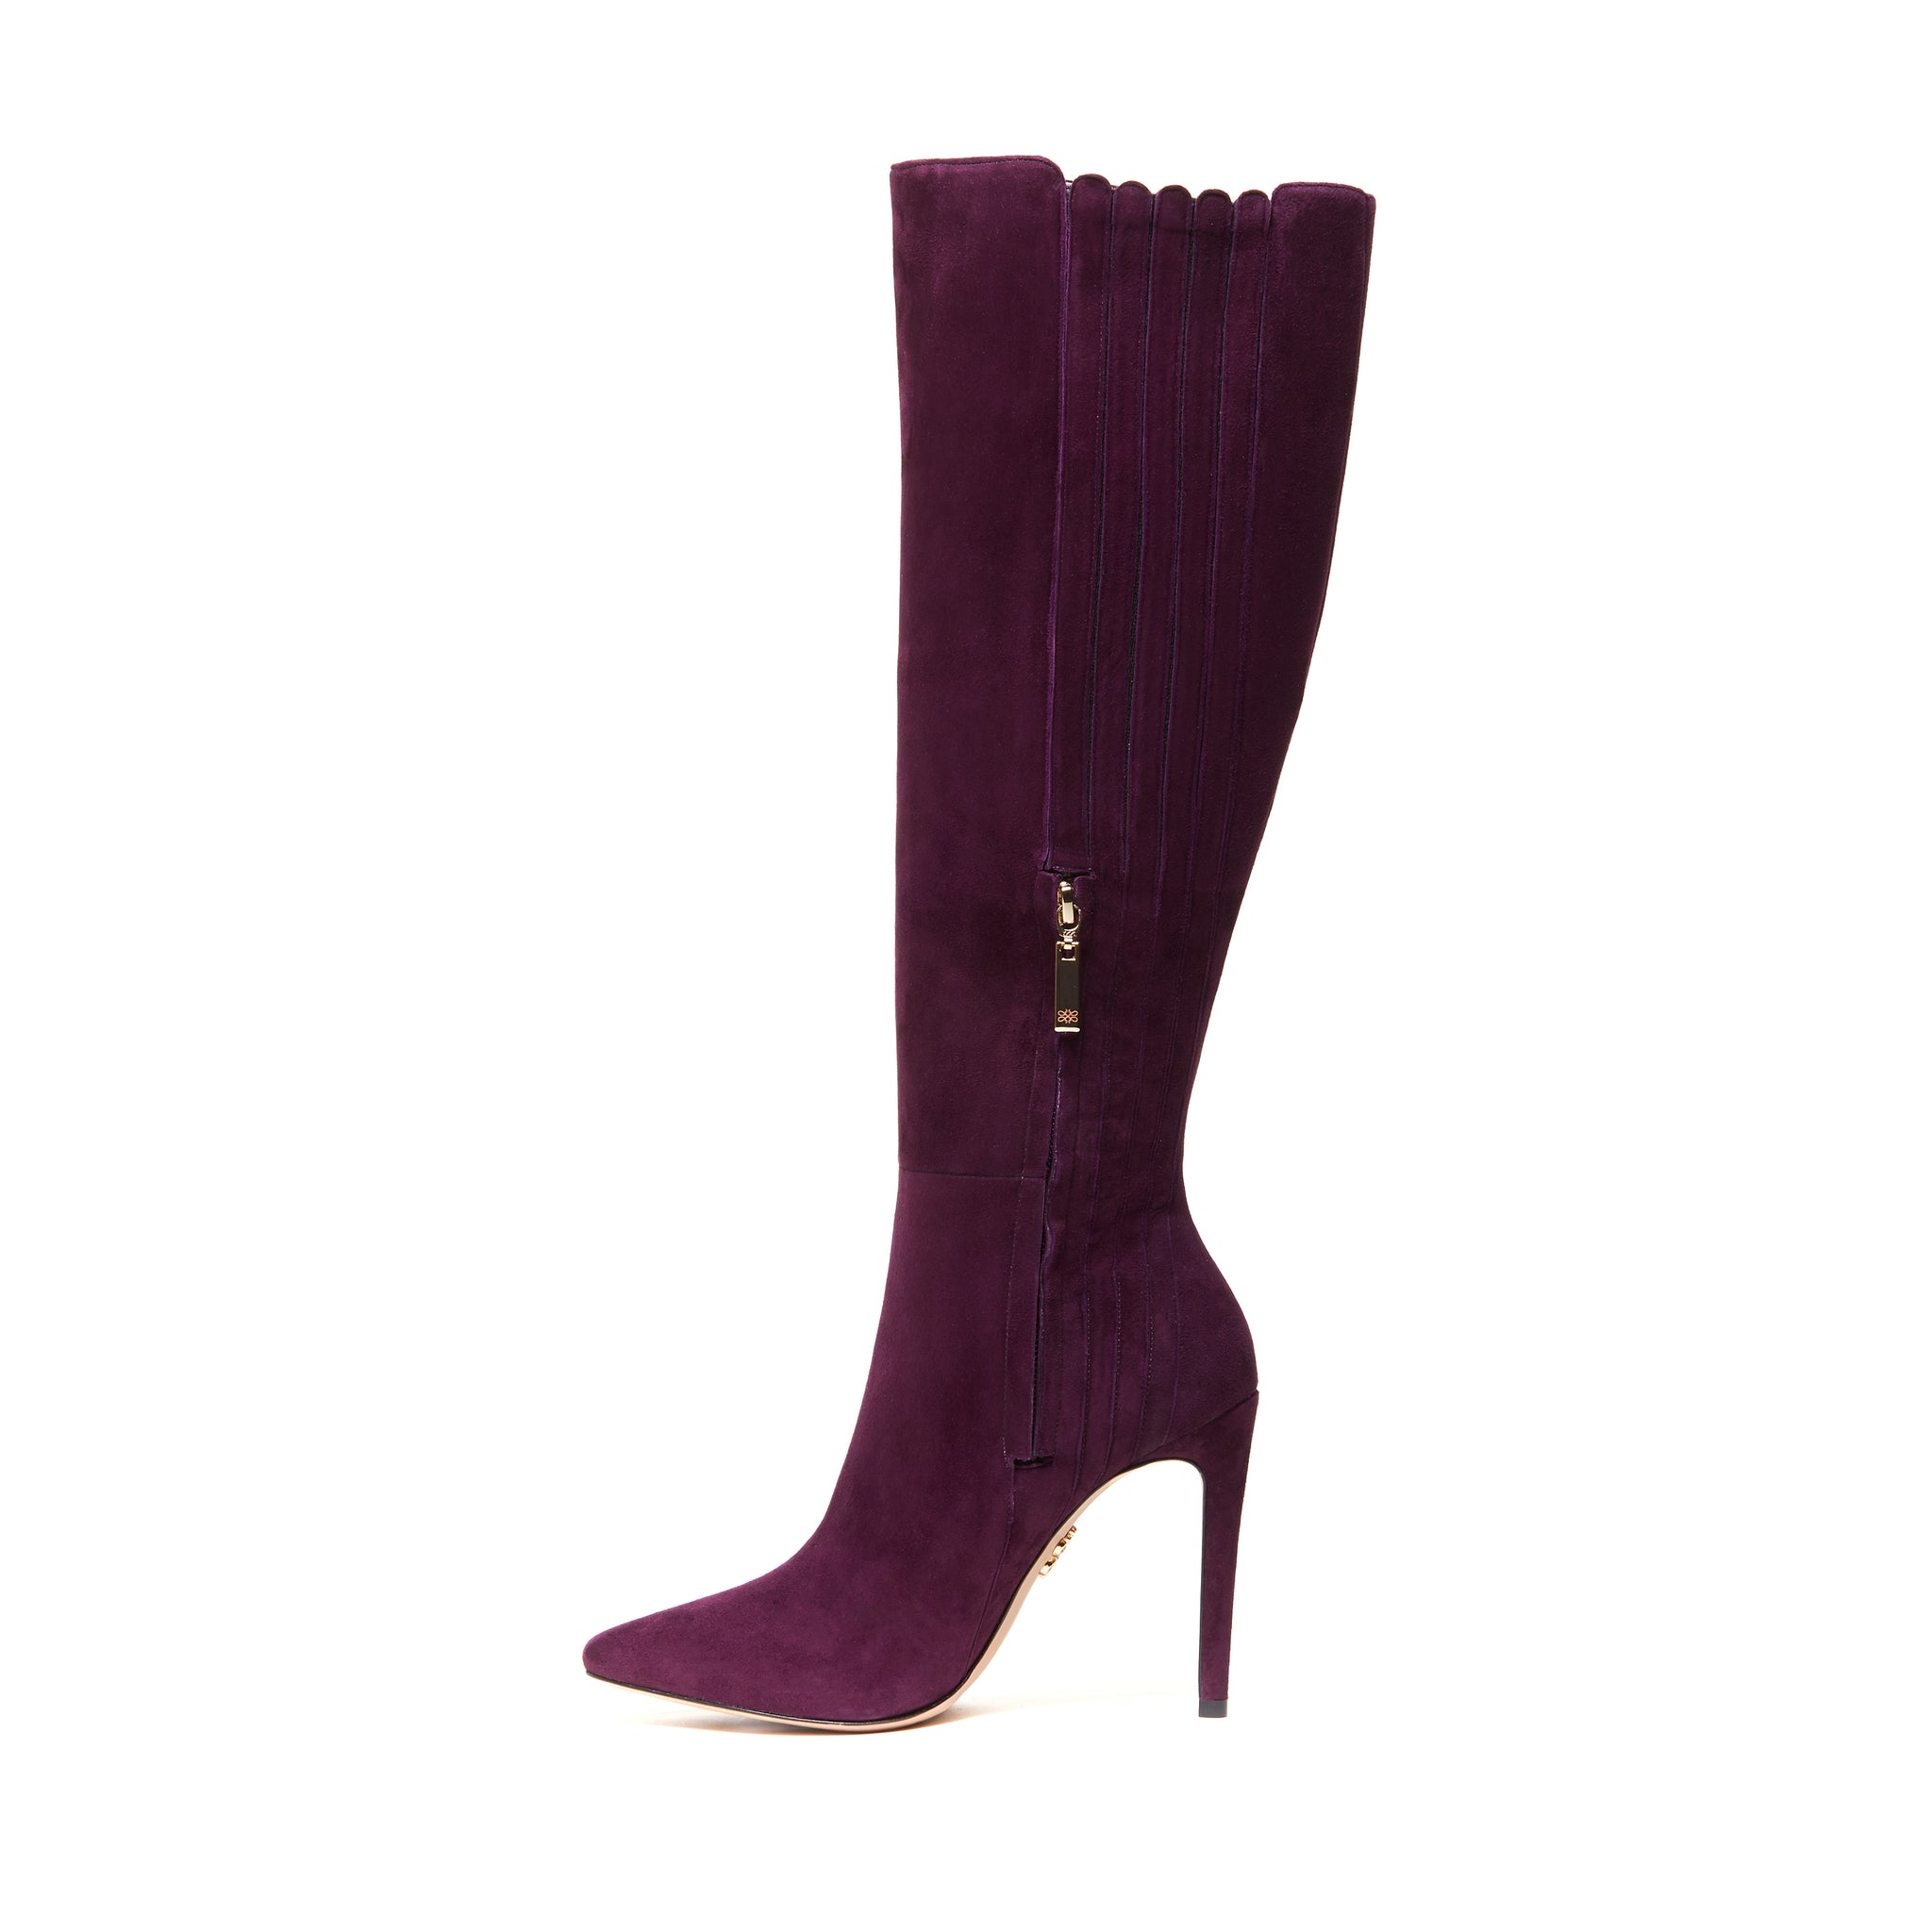 ANAIS Knee Boots - Eggplant (105mm)